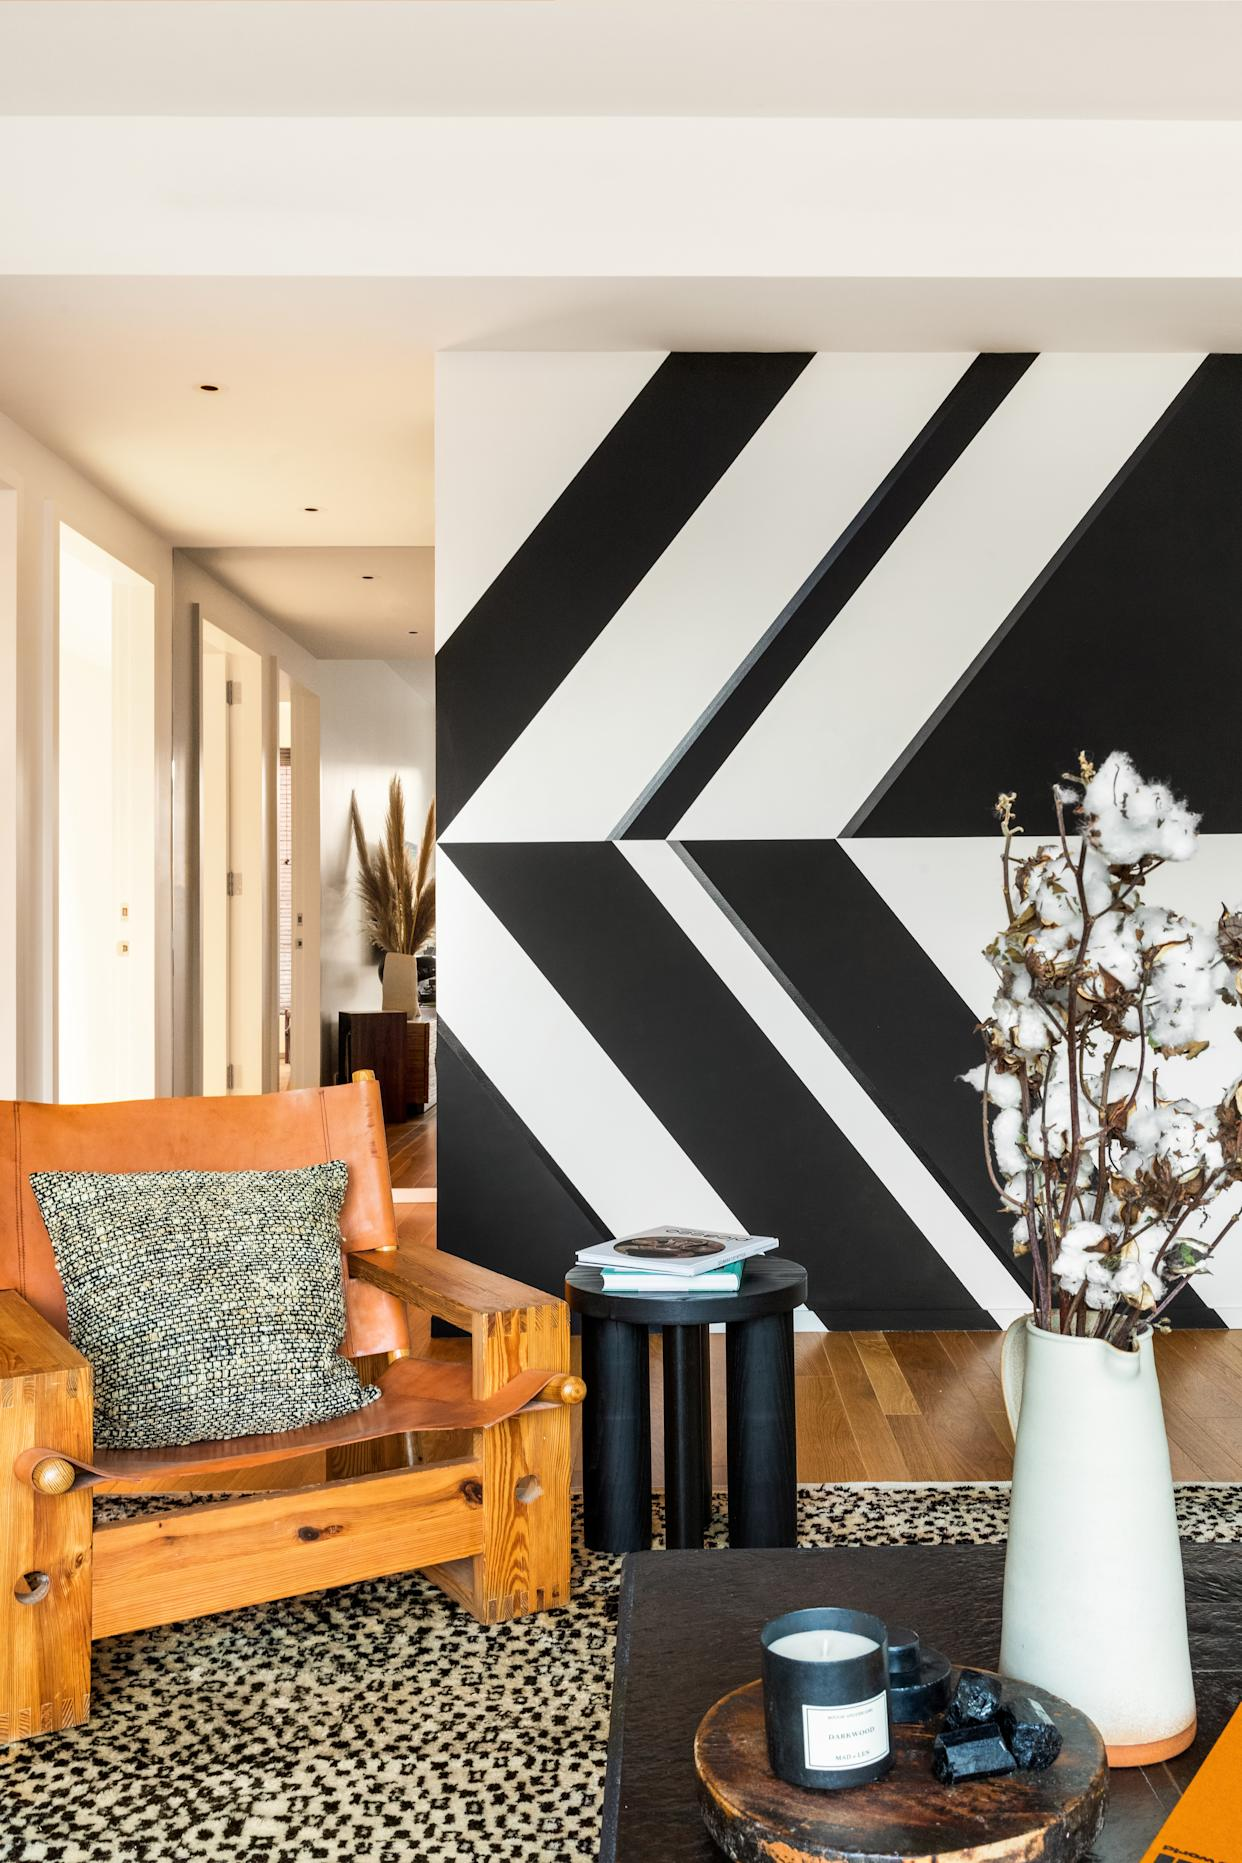 """<div class=""""caption""""> In the living room, Chris Wyrick designed a wall mural inspired by the architecture of Brazilian modernist Oscar Niemeyer. Børge Mogensen chair; side table by Matter. </div>"""